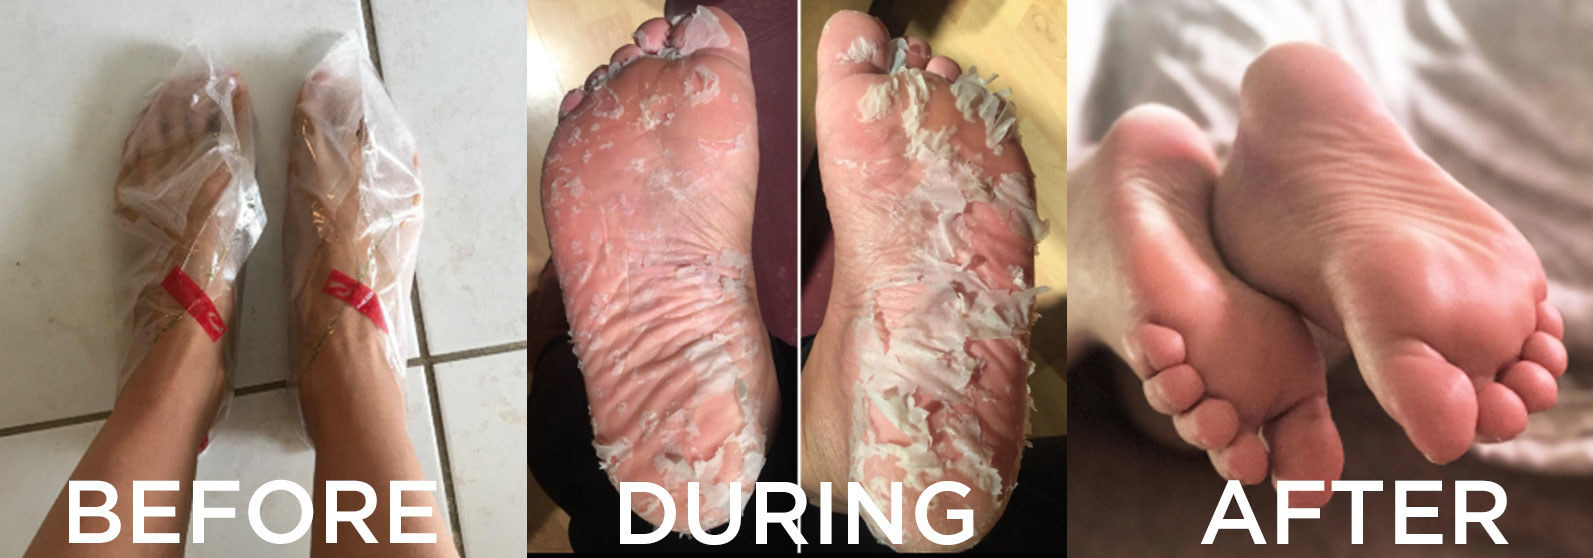 a before, during, and after reviewer picture that shows the process of putting feet into plastic socks, the feet peeling a lot, and smooth feet afterwards